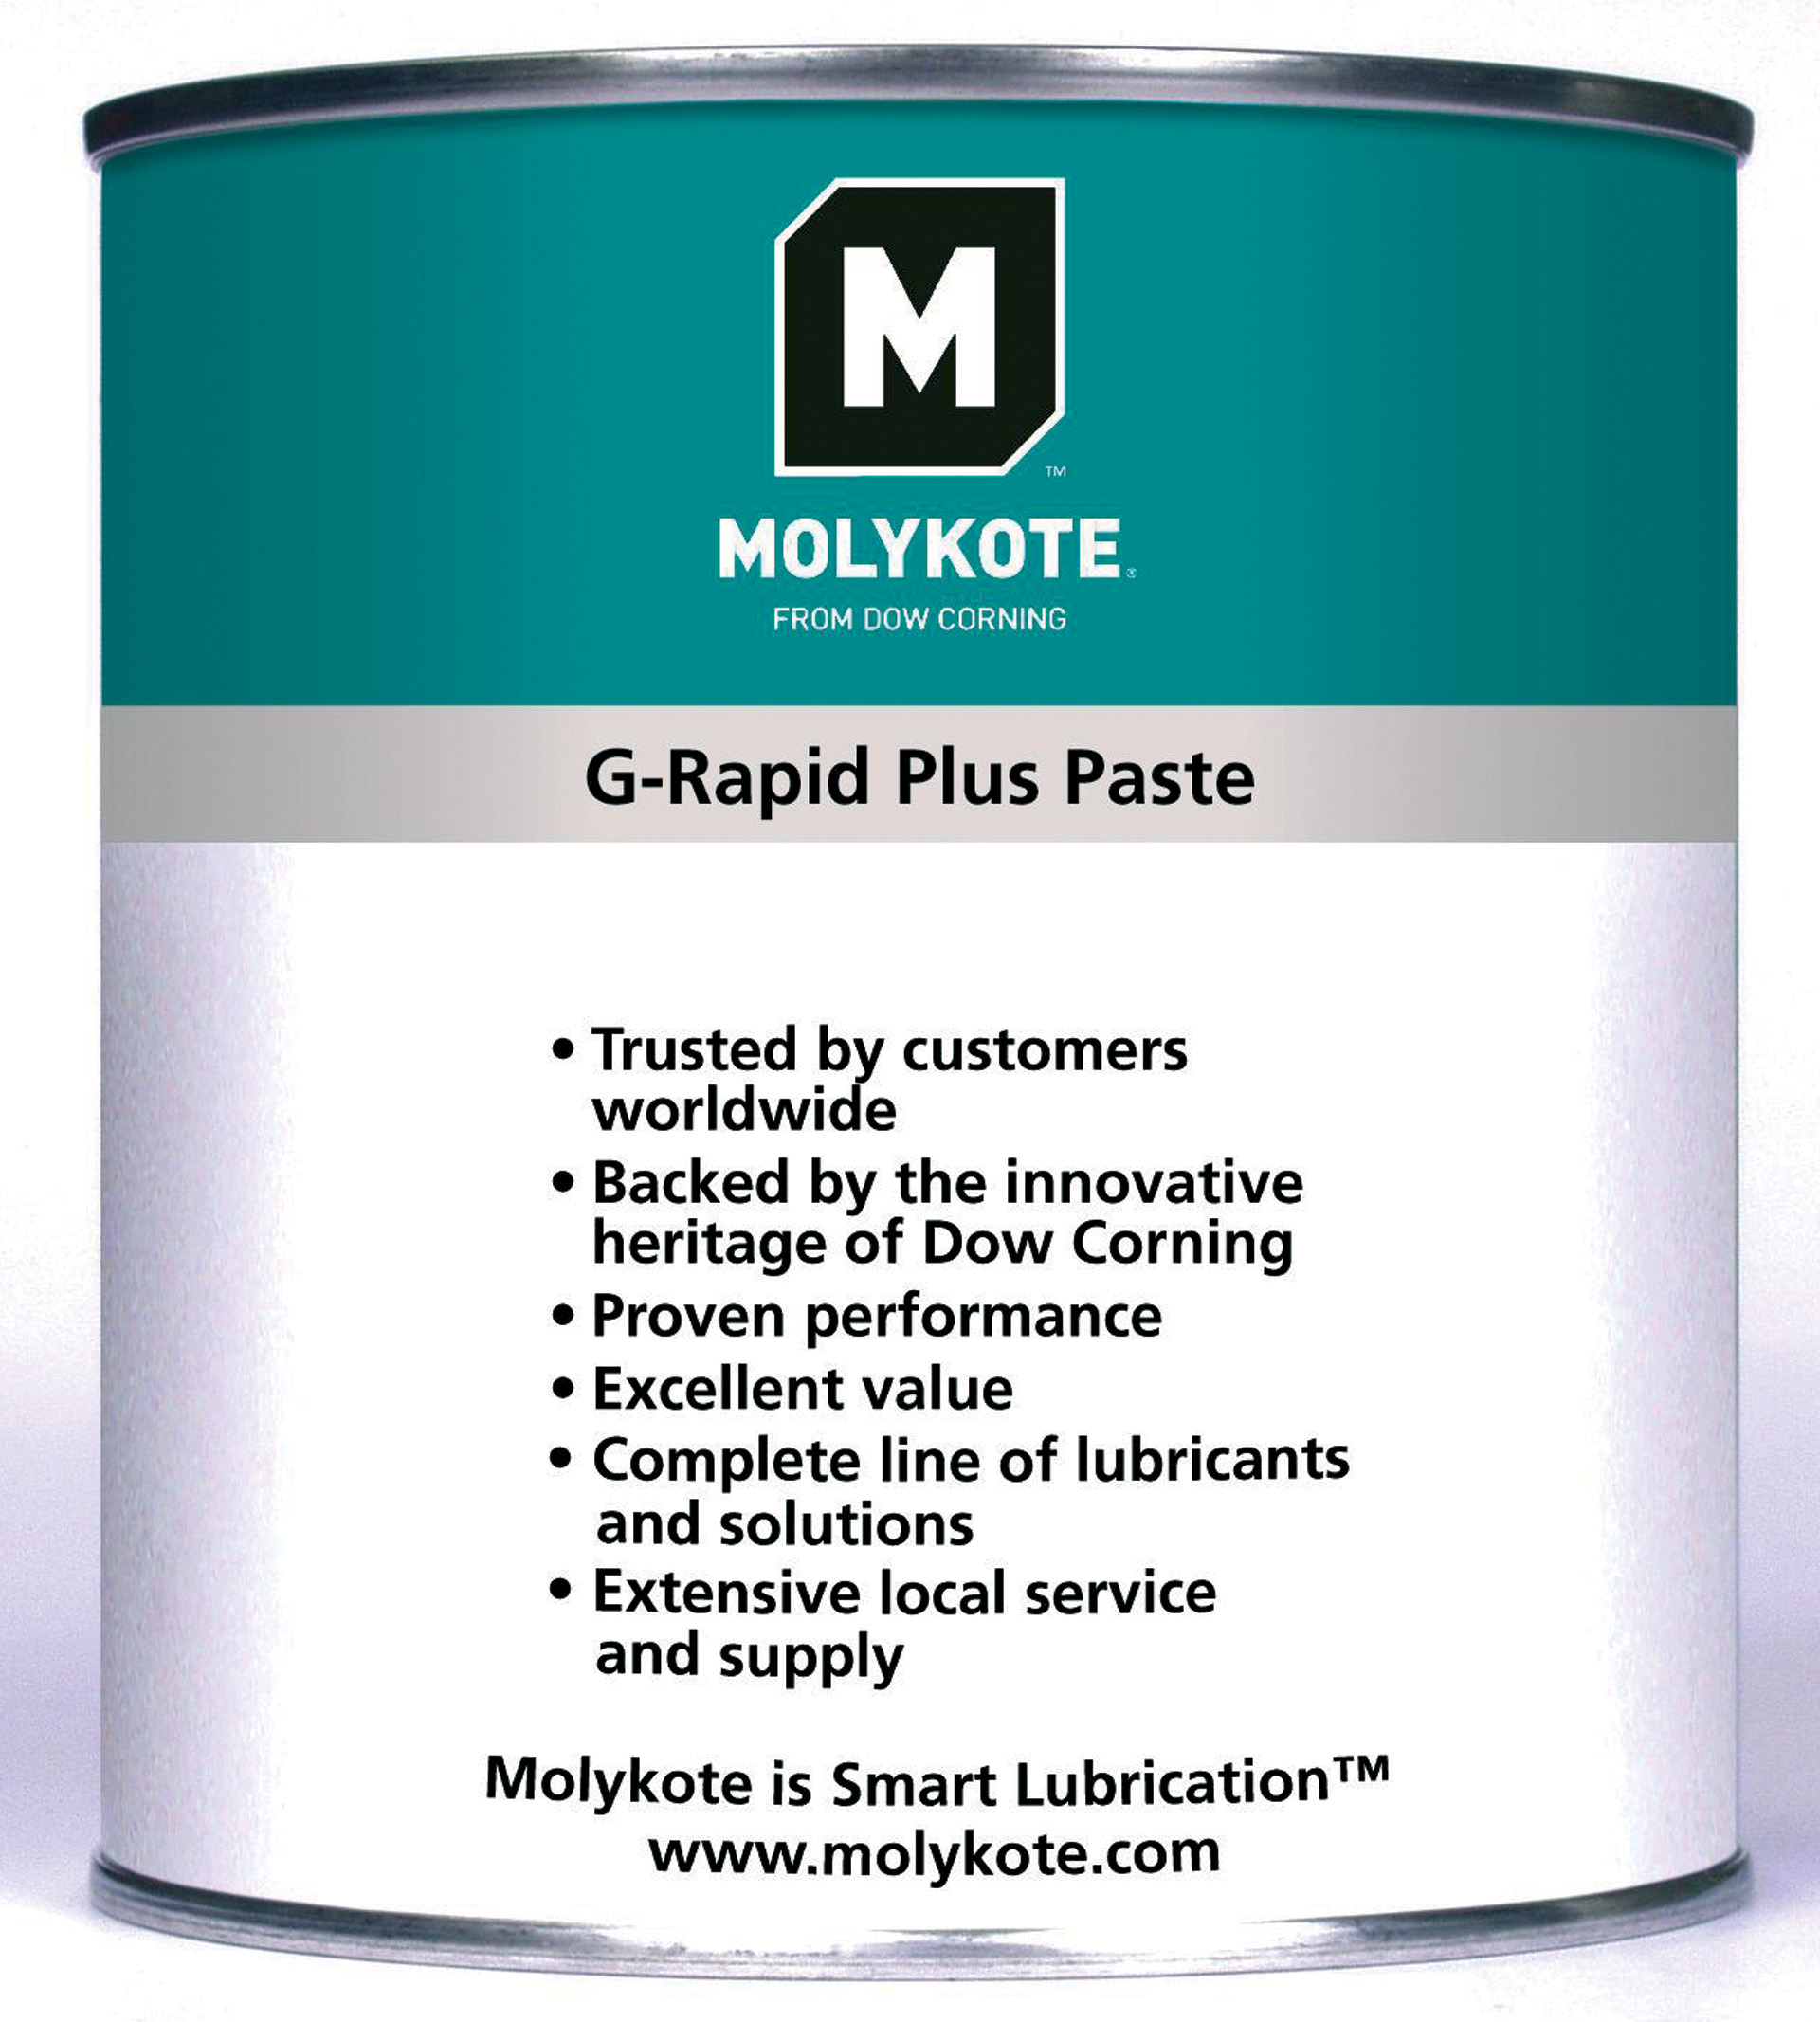 Molykote	G-Rapid Plus